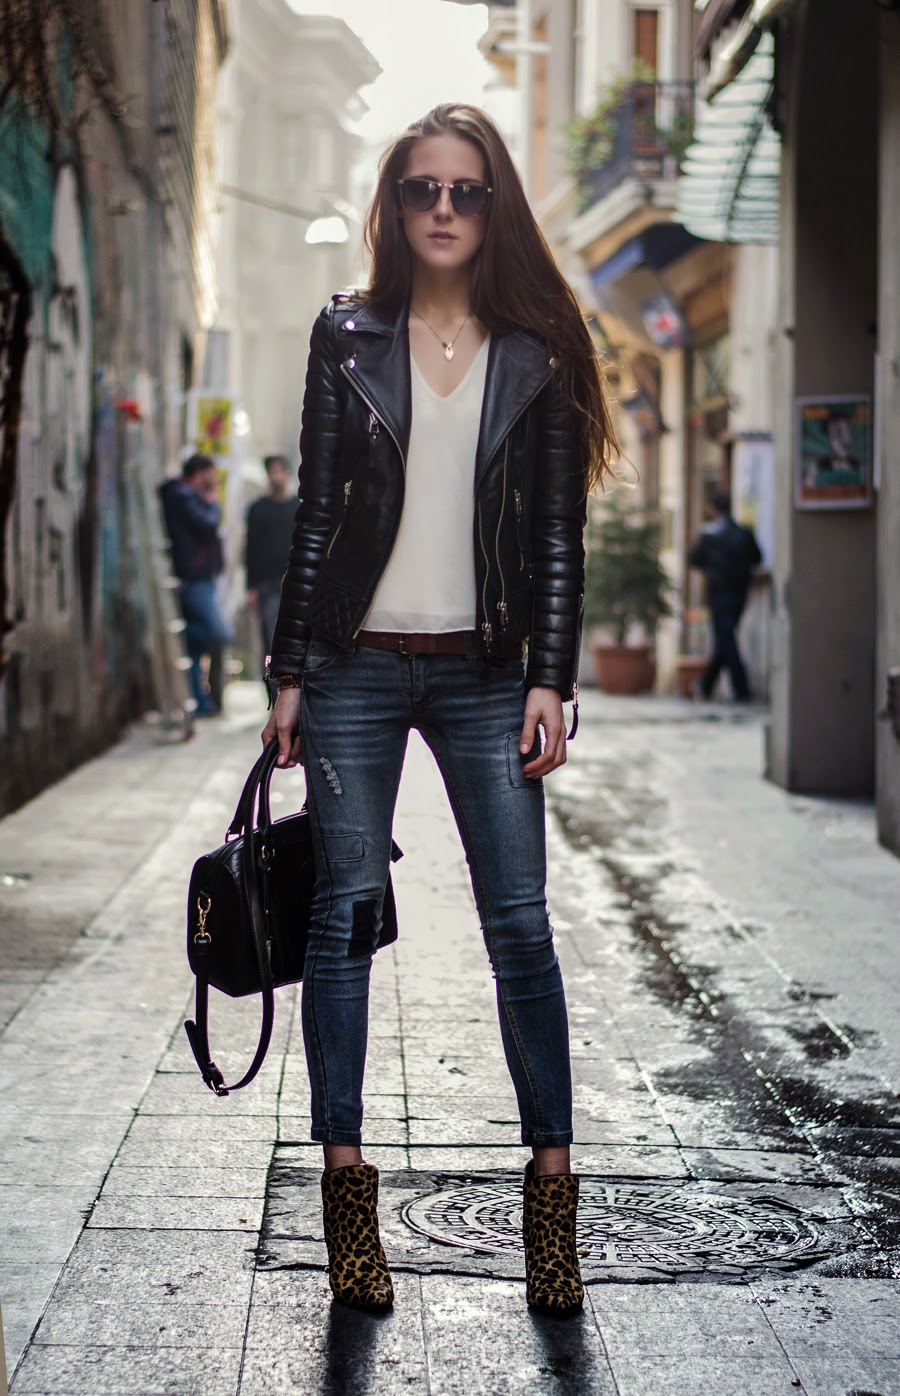 Leather Jacket Fashion Blog Nice Fashion